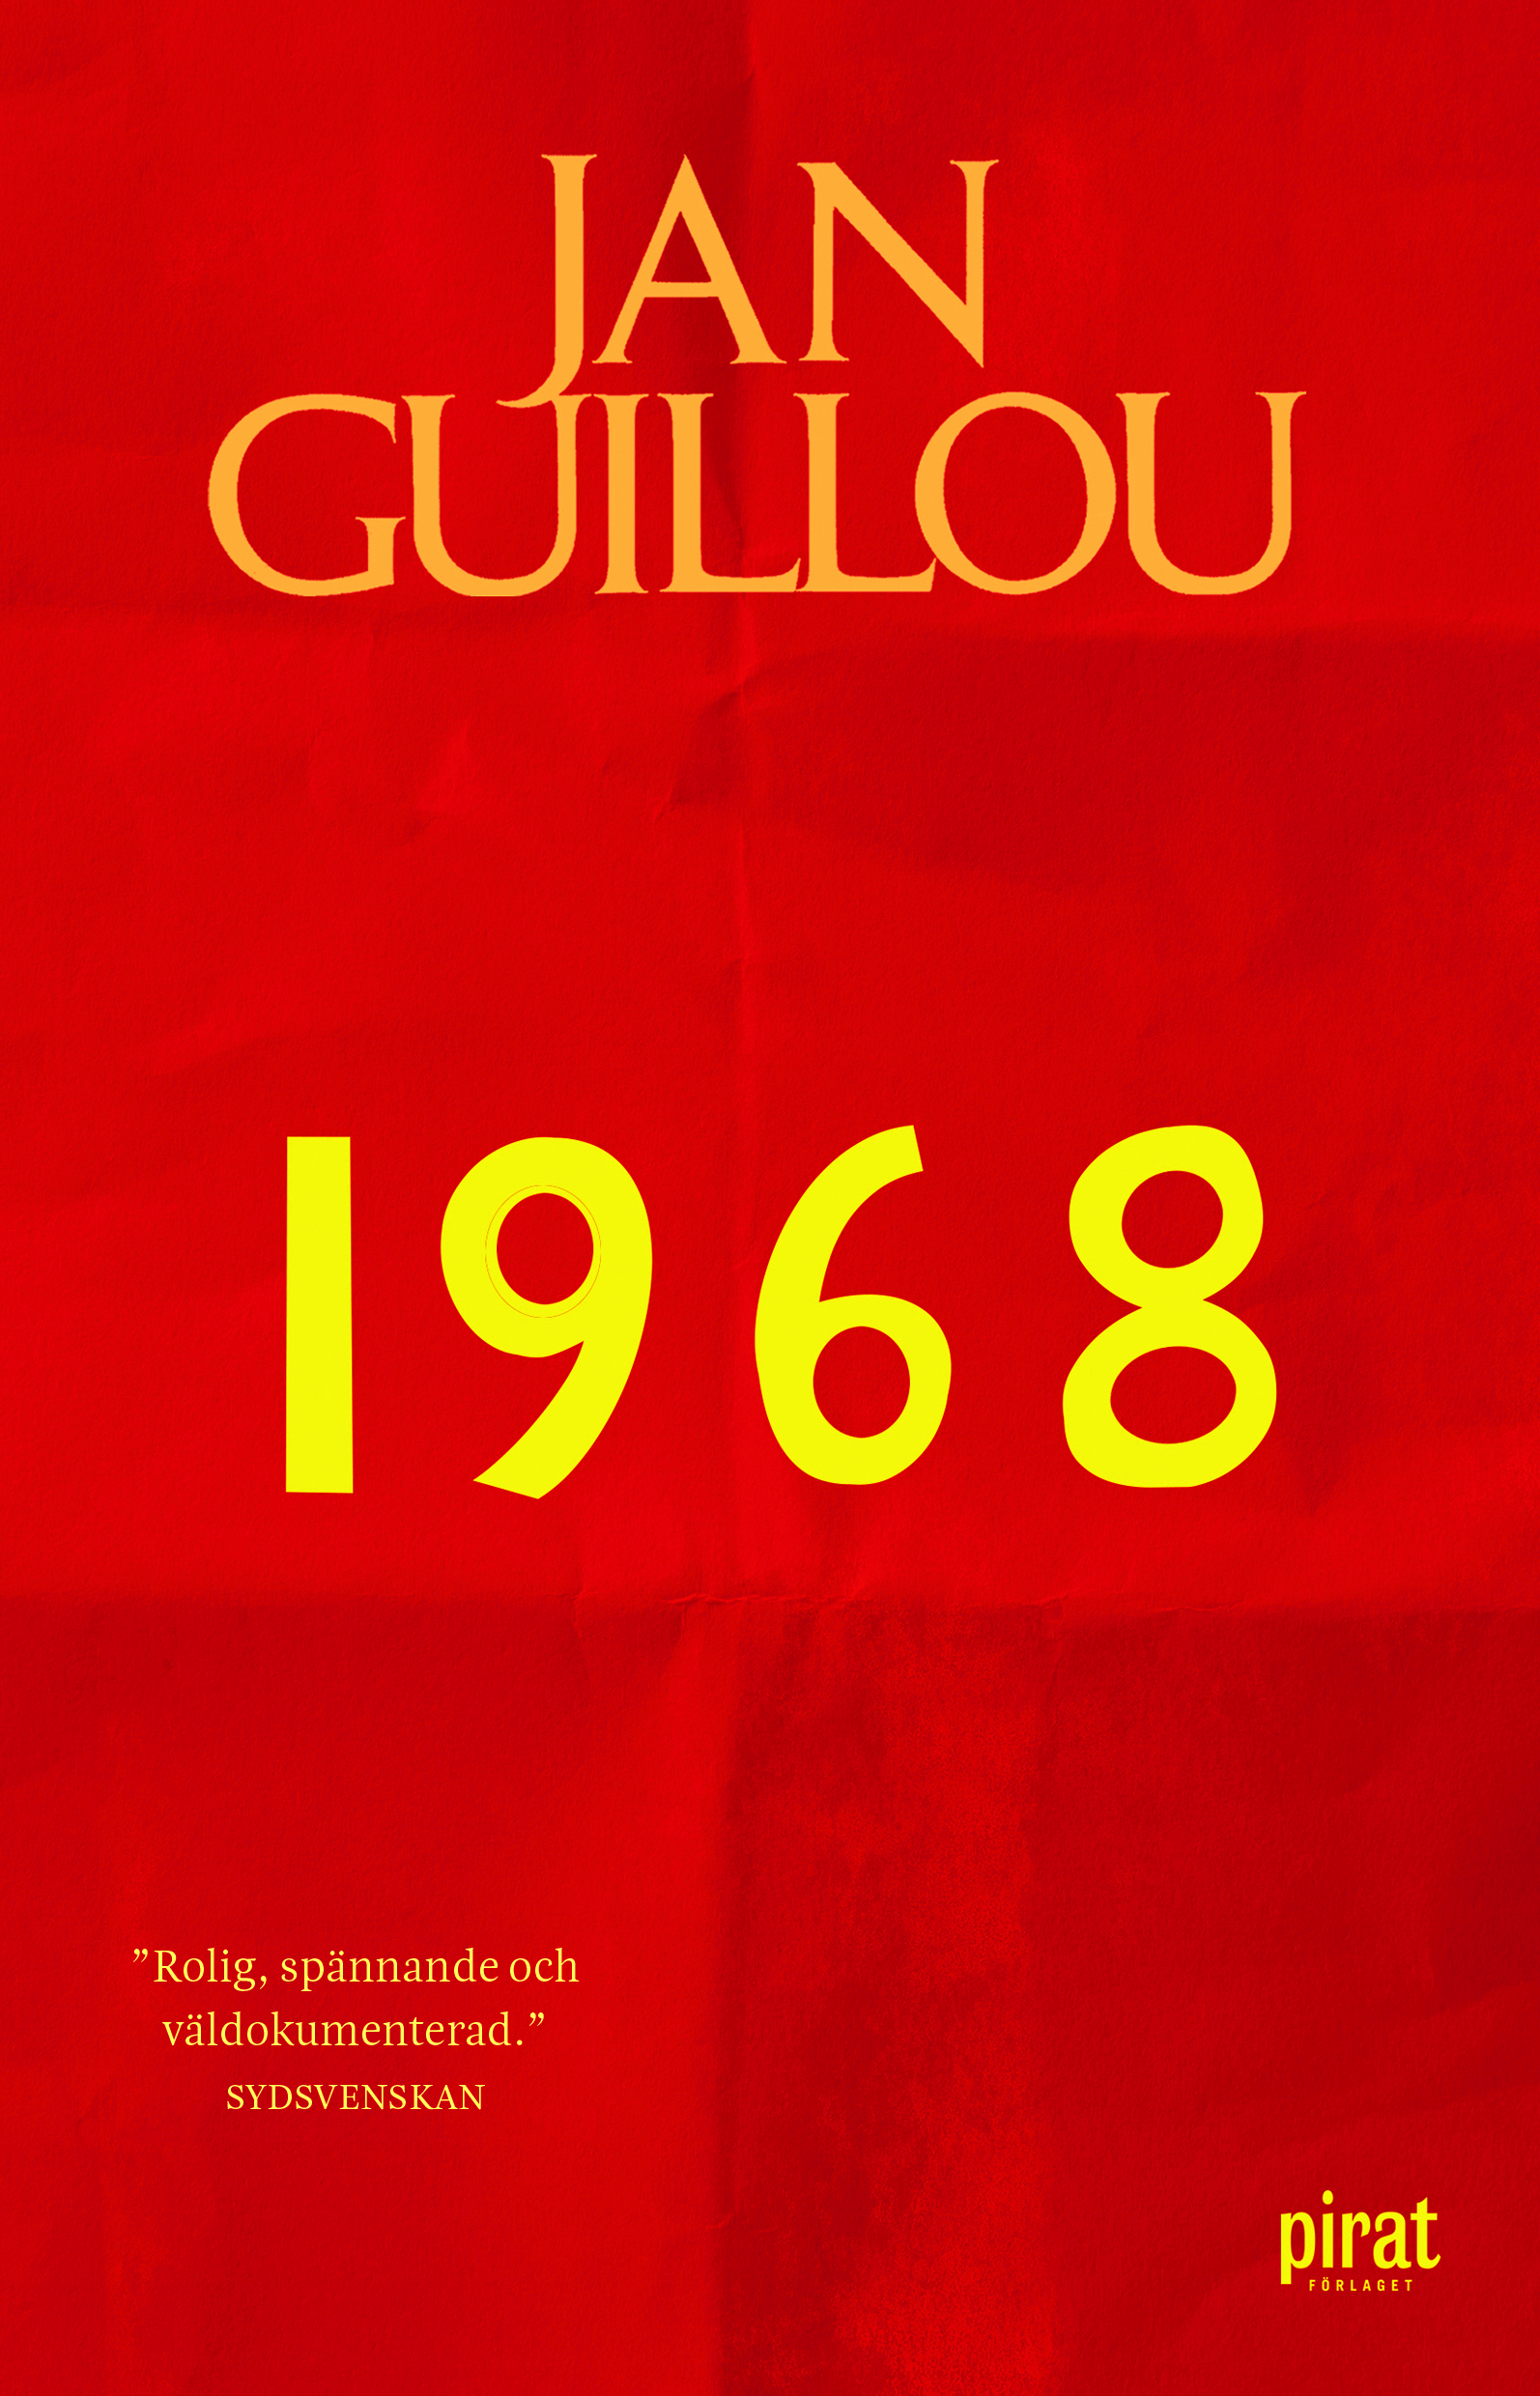 1968 jan guillou